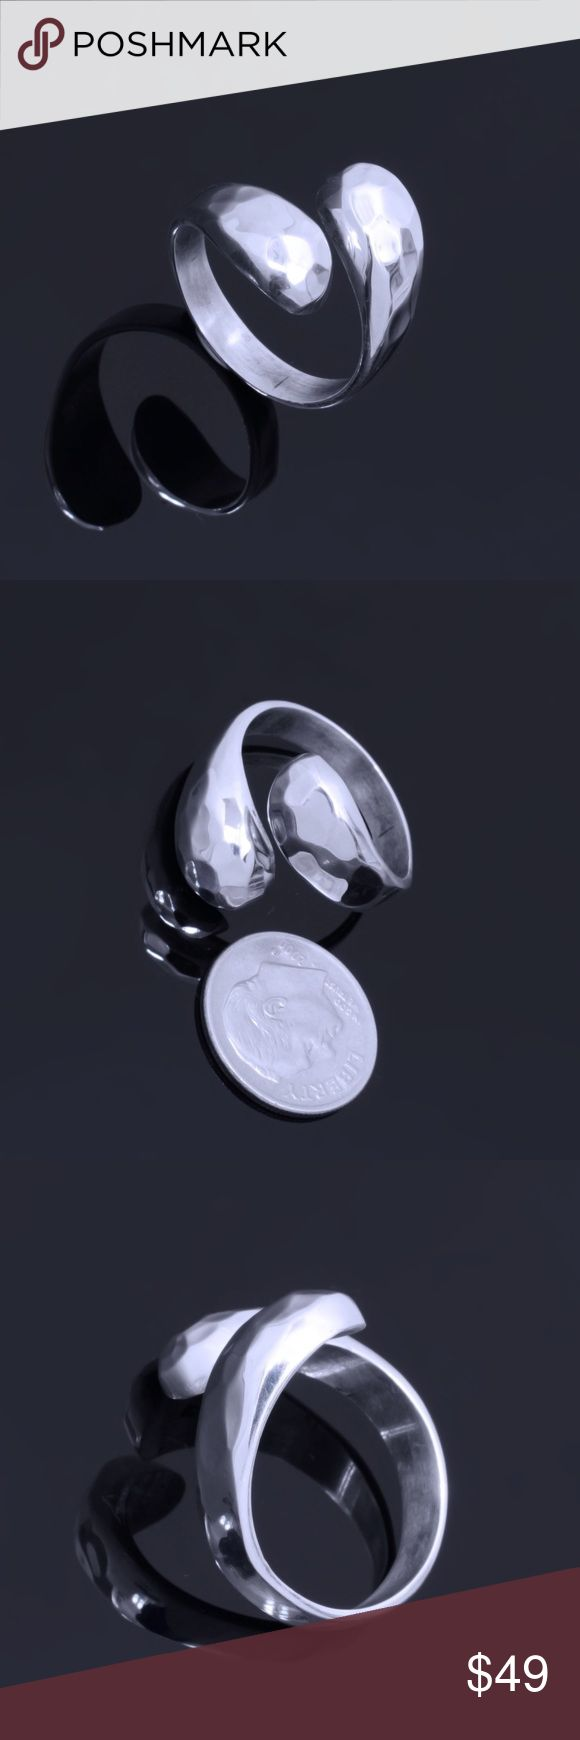 """Sterling Silver Ring Stamped """"925"""".   This is not a stock photo. The image is of the actual article that is being sold  Sterling silver is an alloy of silver containing 92.5% by mass of silver and 7.5% by mass of other metals, usually copper. The sterling silver standard has a minimum millesimal fineness of 925.  All my jewelry is solid sterling silver. I do not plate.   Hand crafted in Taxco, Mexico.  Will ship within 2 days of order. Jewelry Rings"""